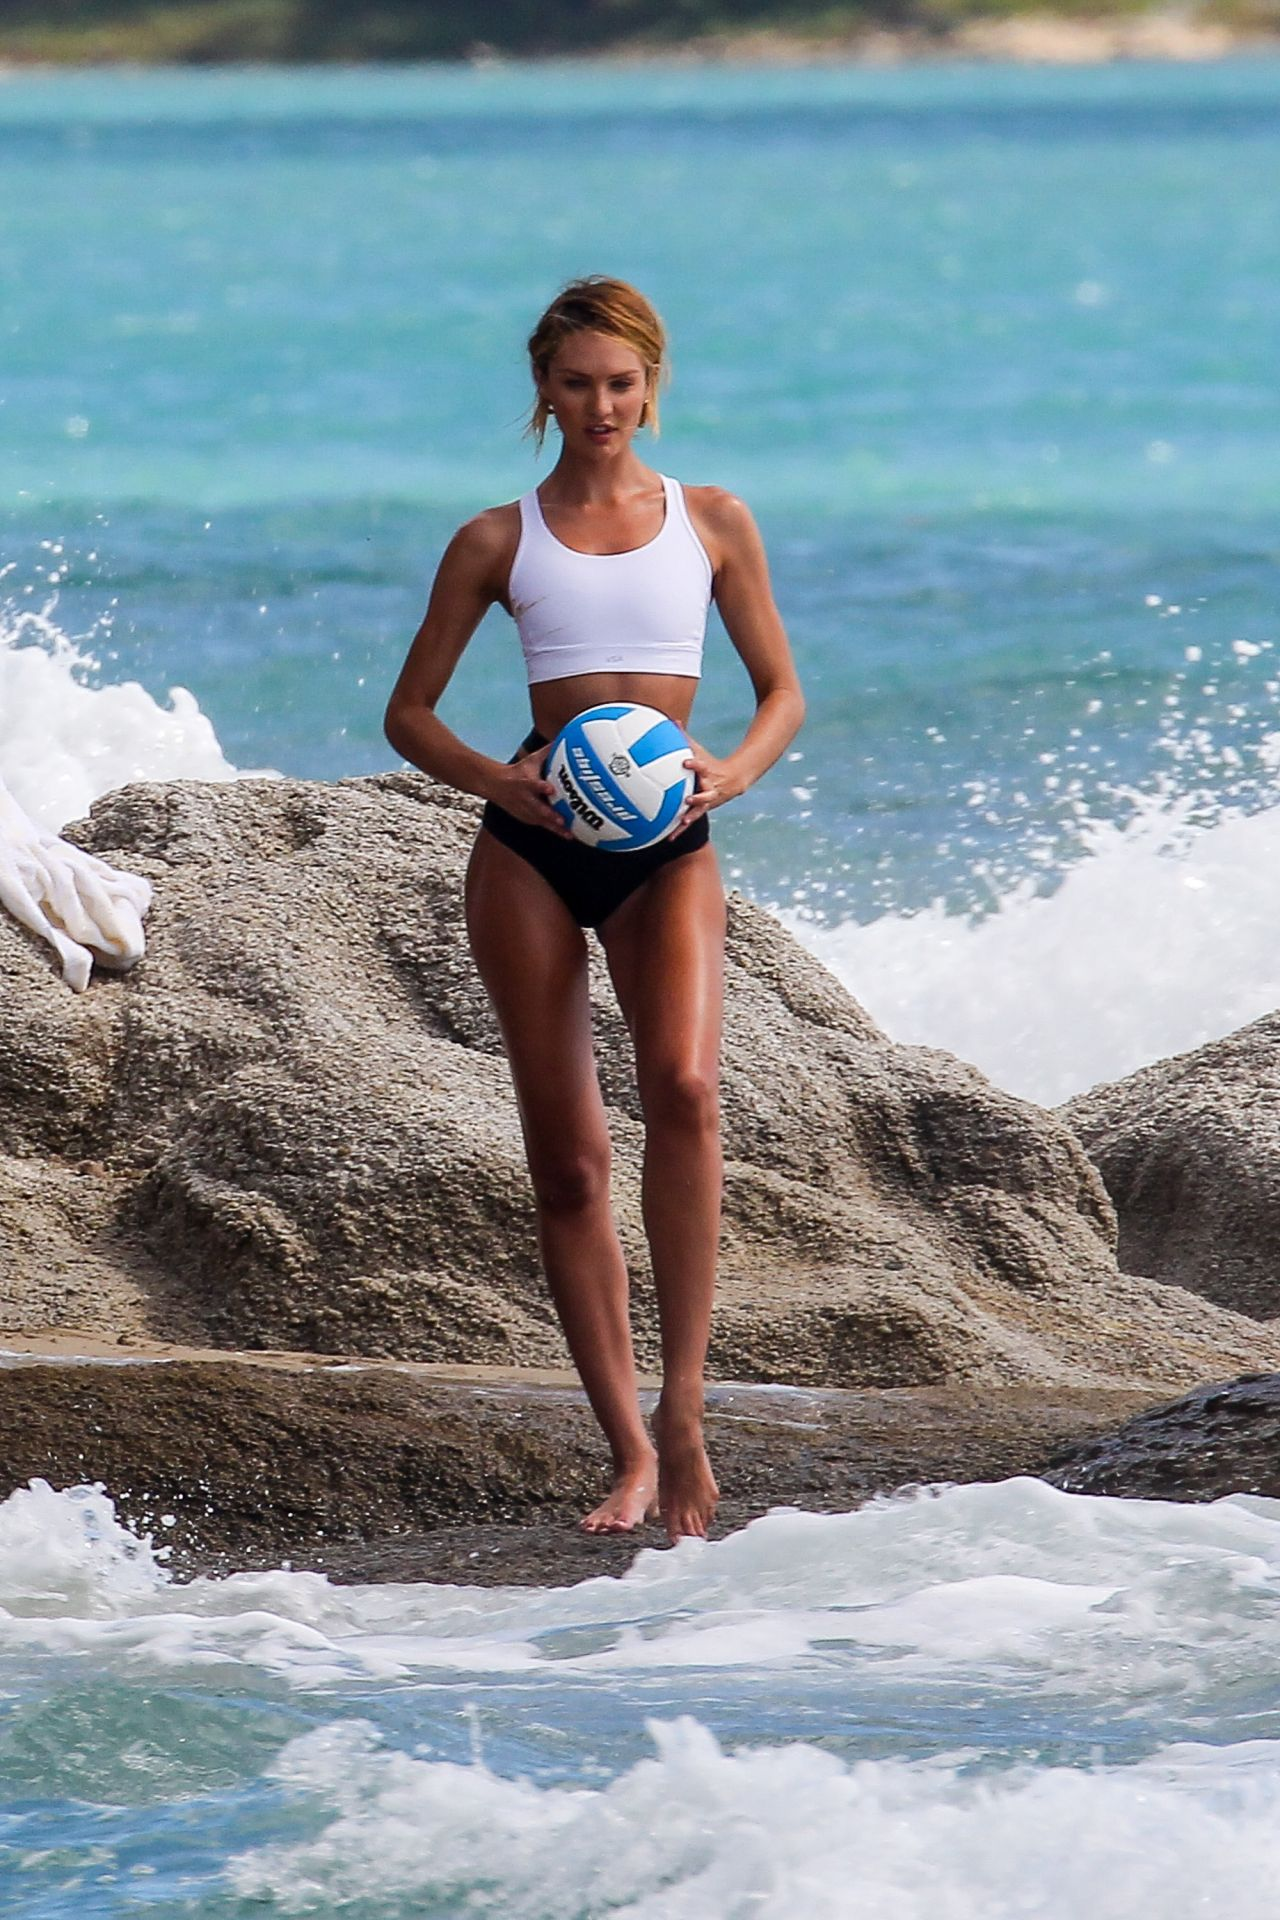 Candice Swanepoel - Swim Photoshoot in Puerto Rico, Jan. 2015